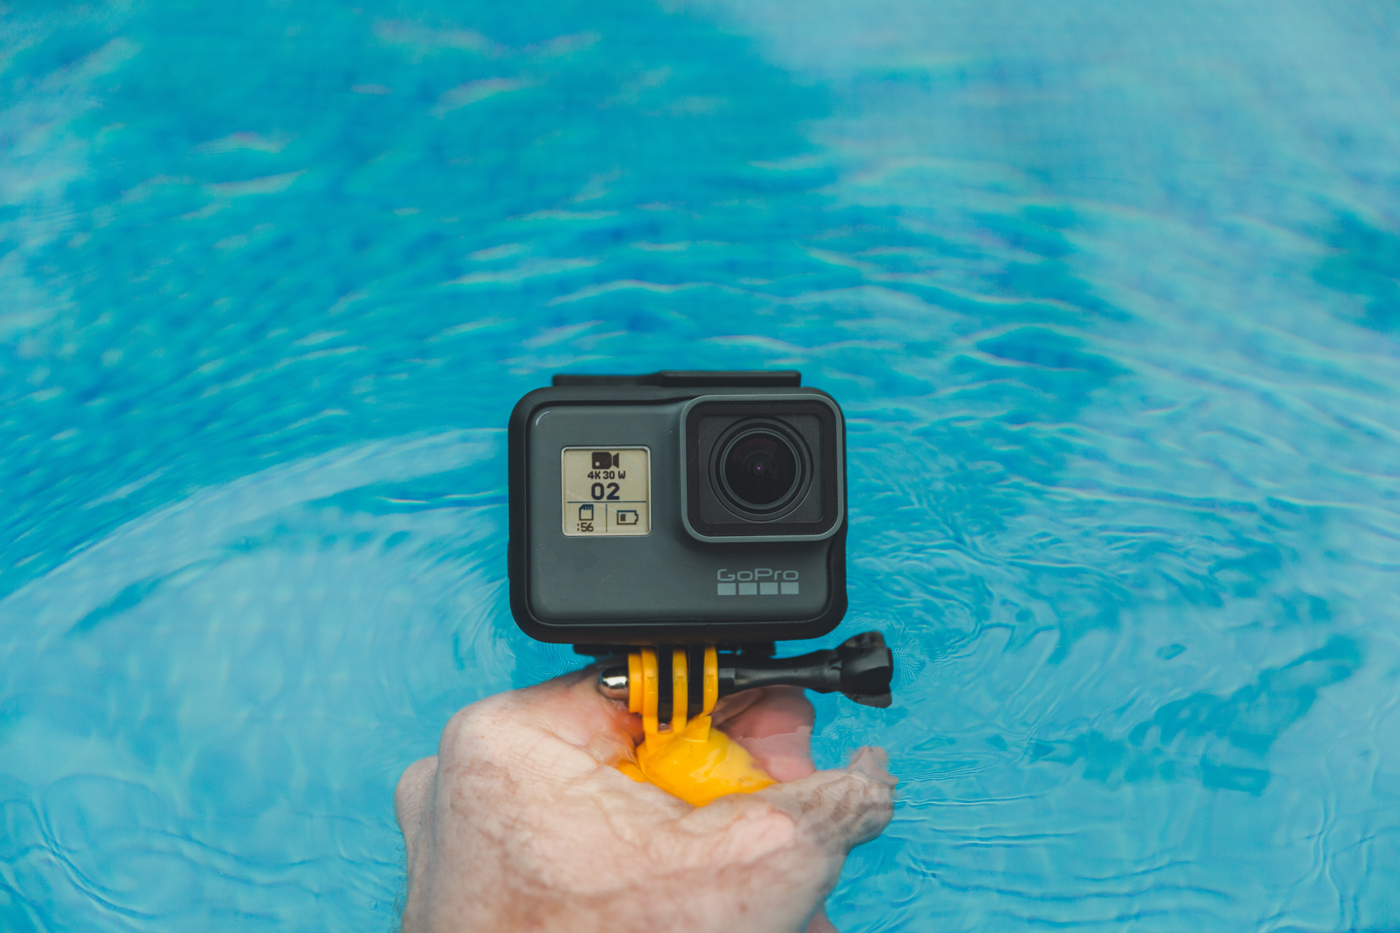 A GoPro on a stand about to be submerged in water